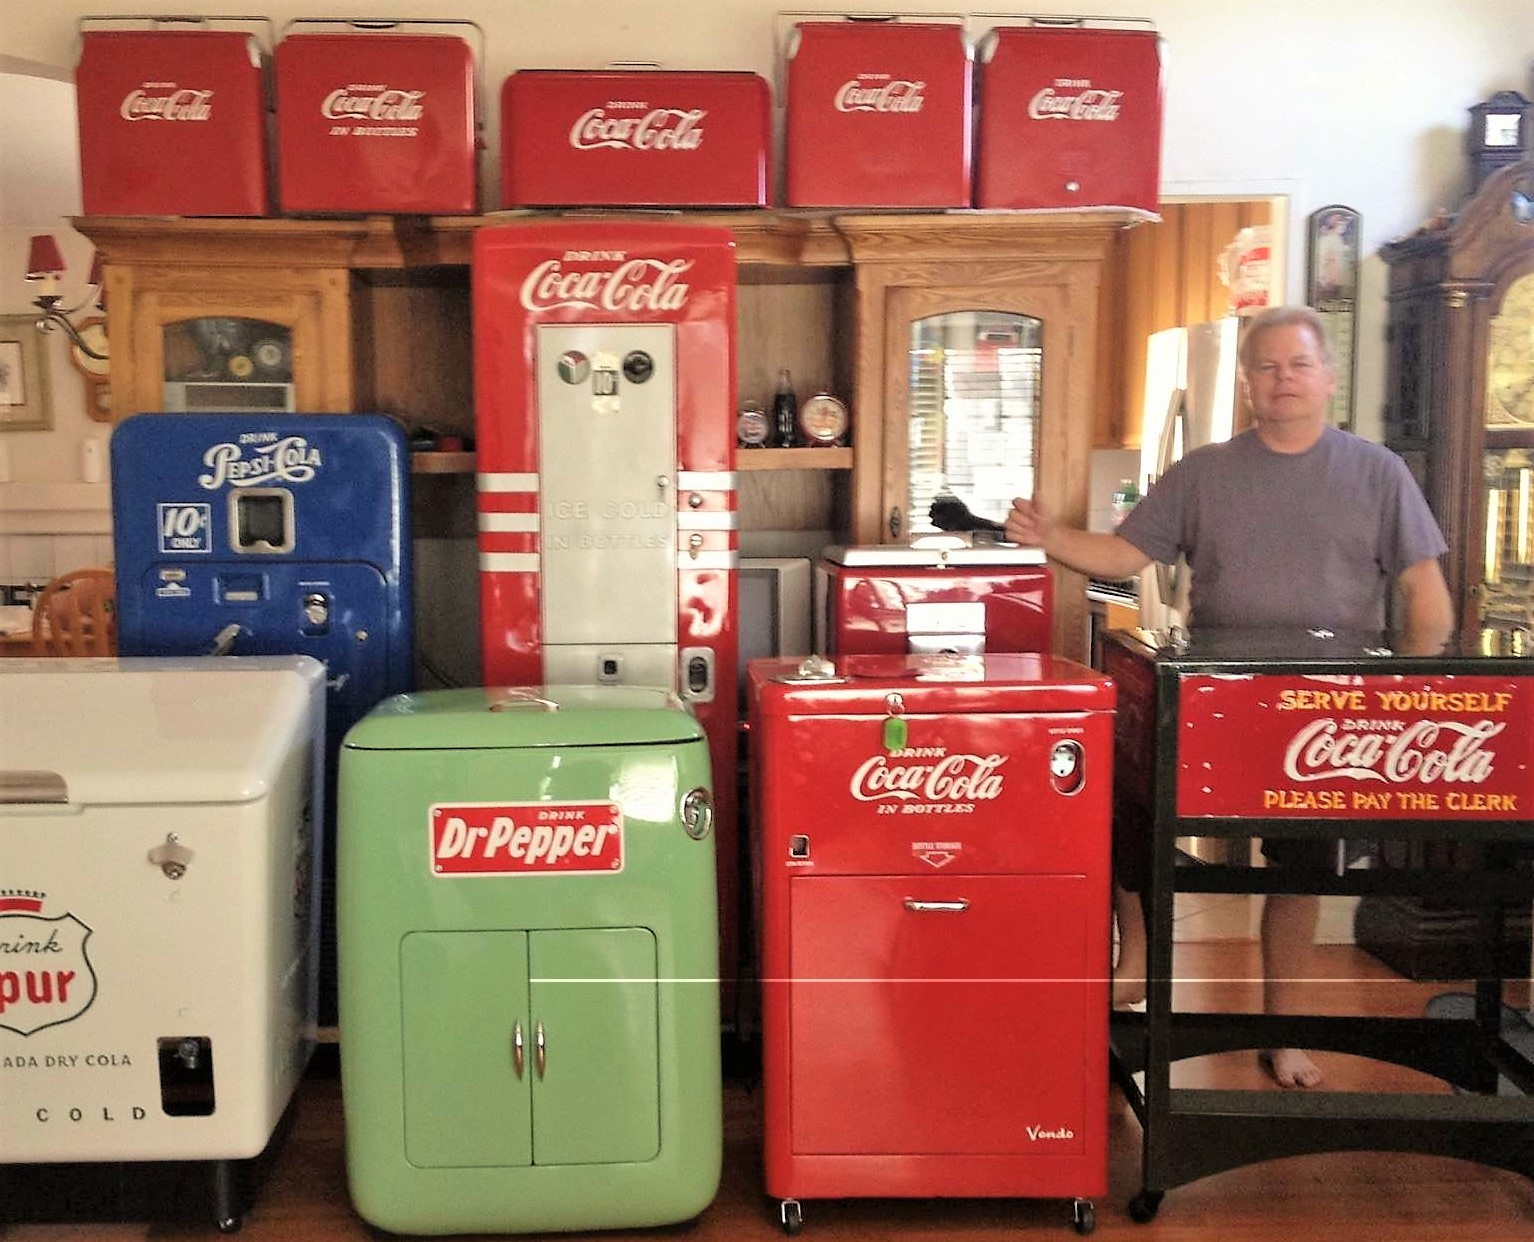 OLD Coke Machines | Nashville | Classic Machines of Tennessee